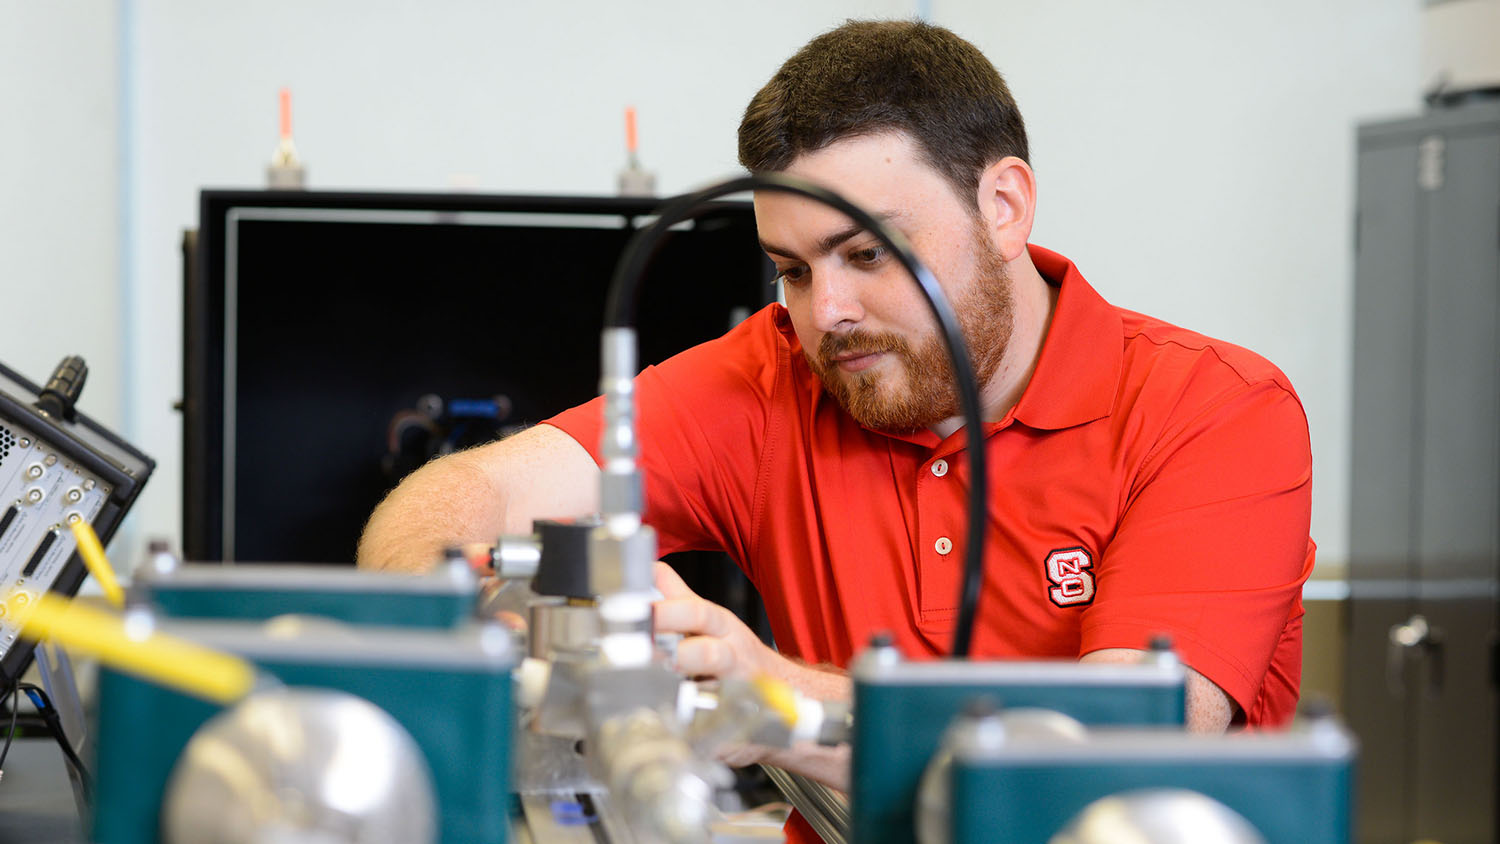 A working professional engineer at NC State